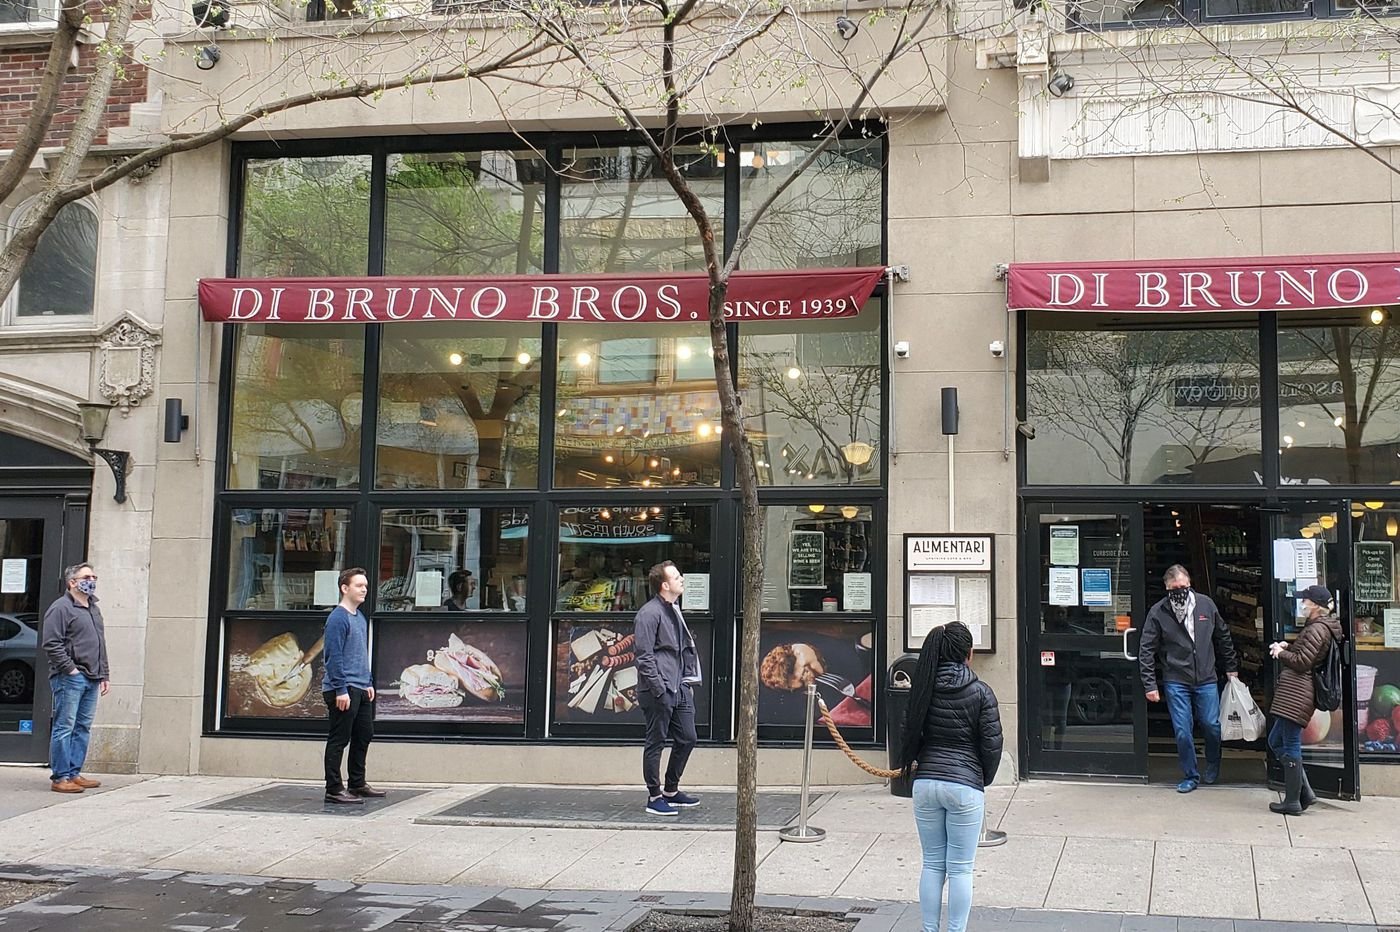 Philly police union president: Cops will boycott Di Bruno Bros. after shop revokes free lunch offer